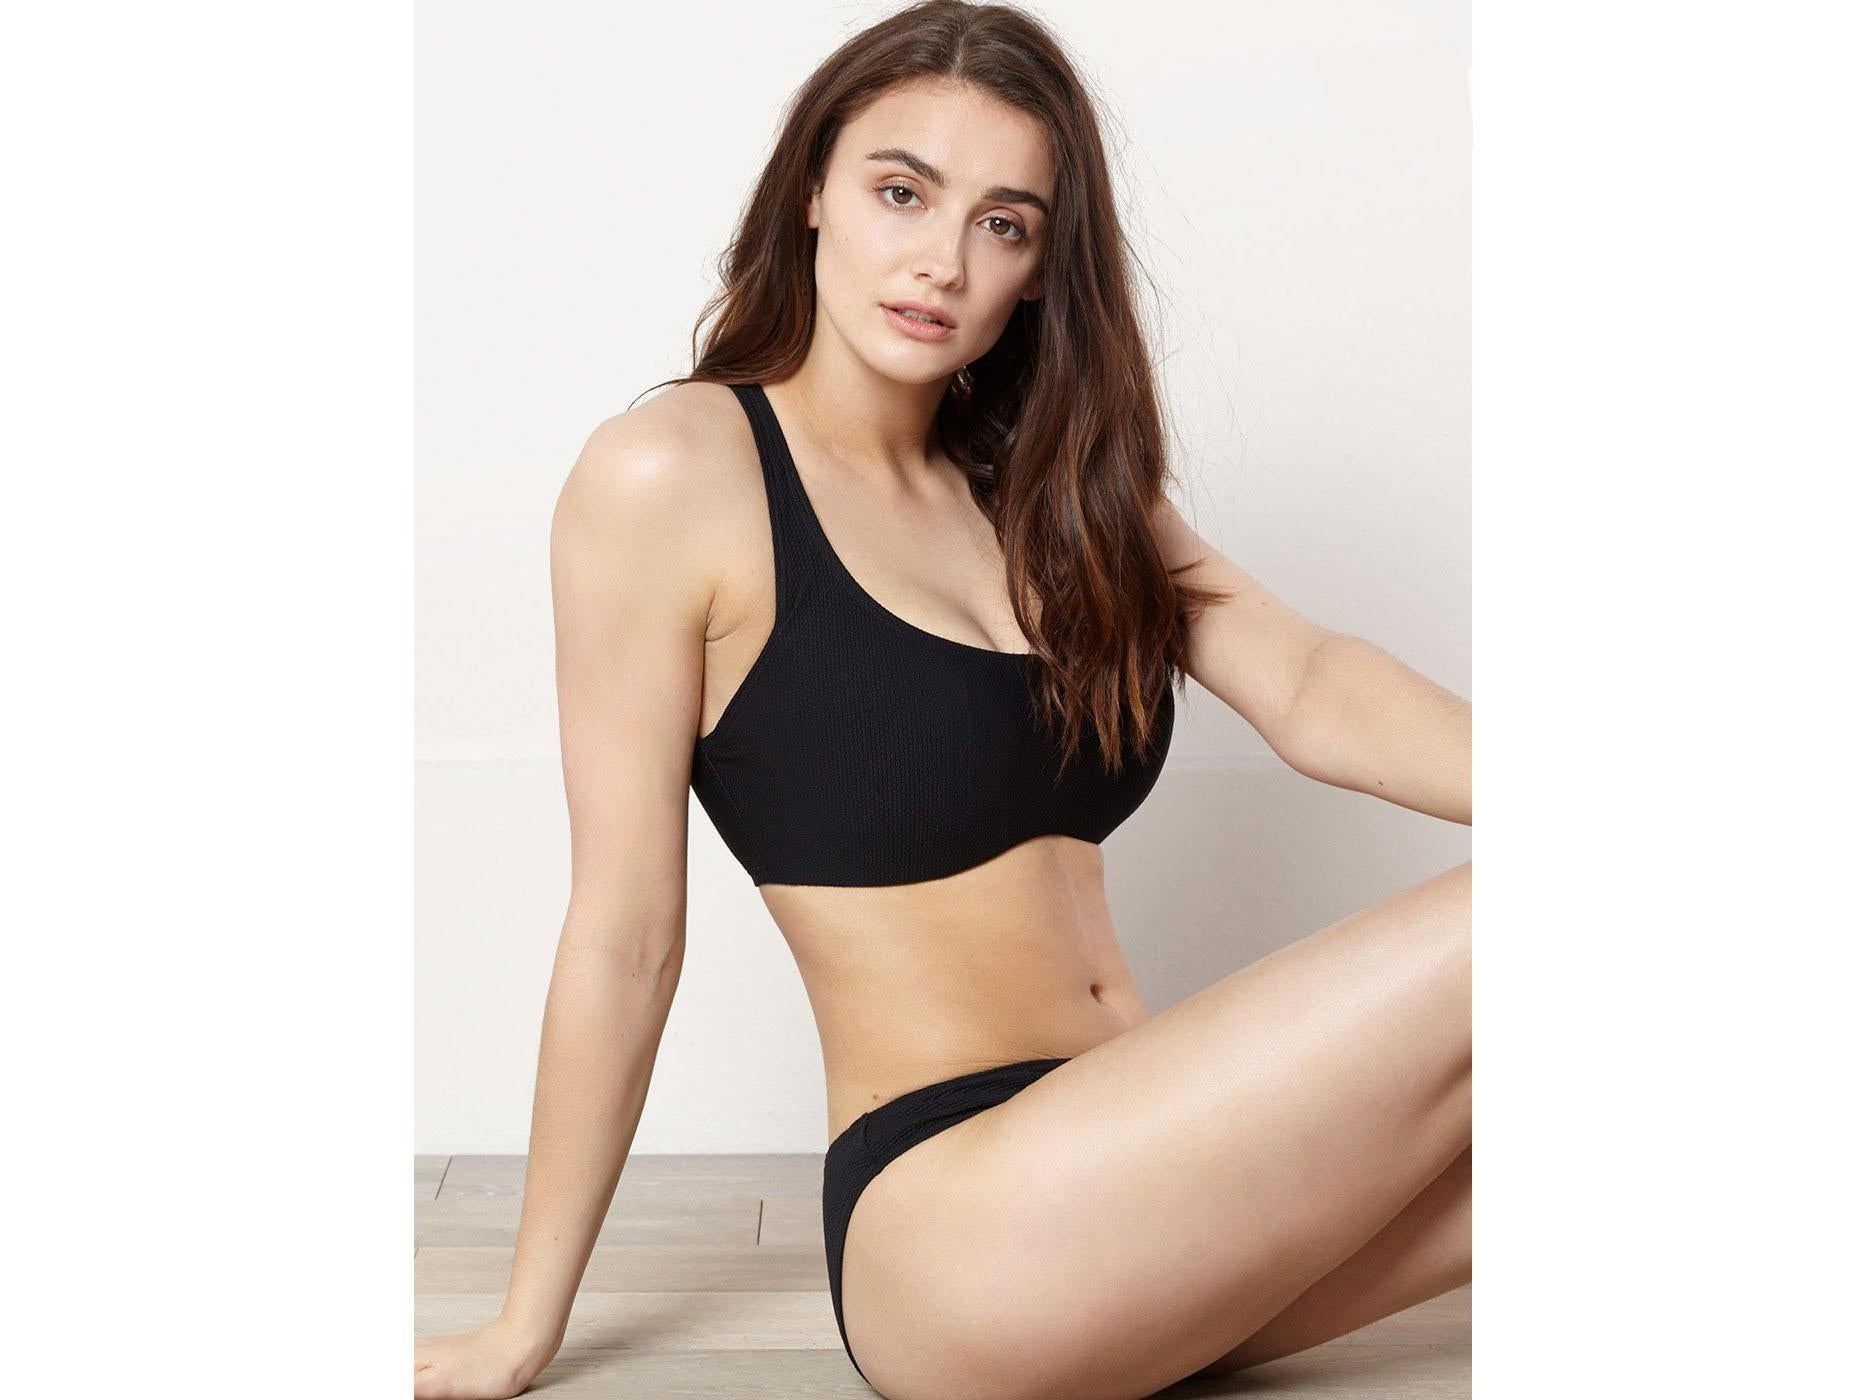 ac47df8bc6 Best bikini brands for bigger busts that deliver on fit, style, comfort and  quality